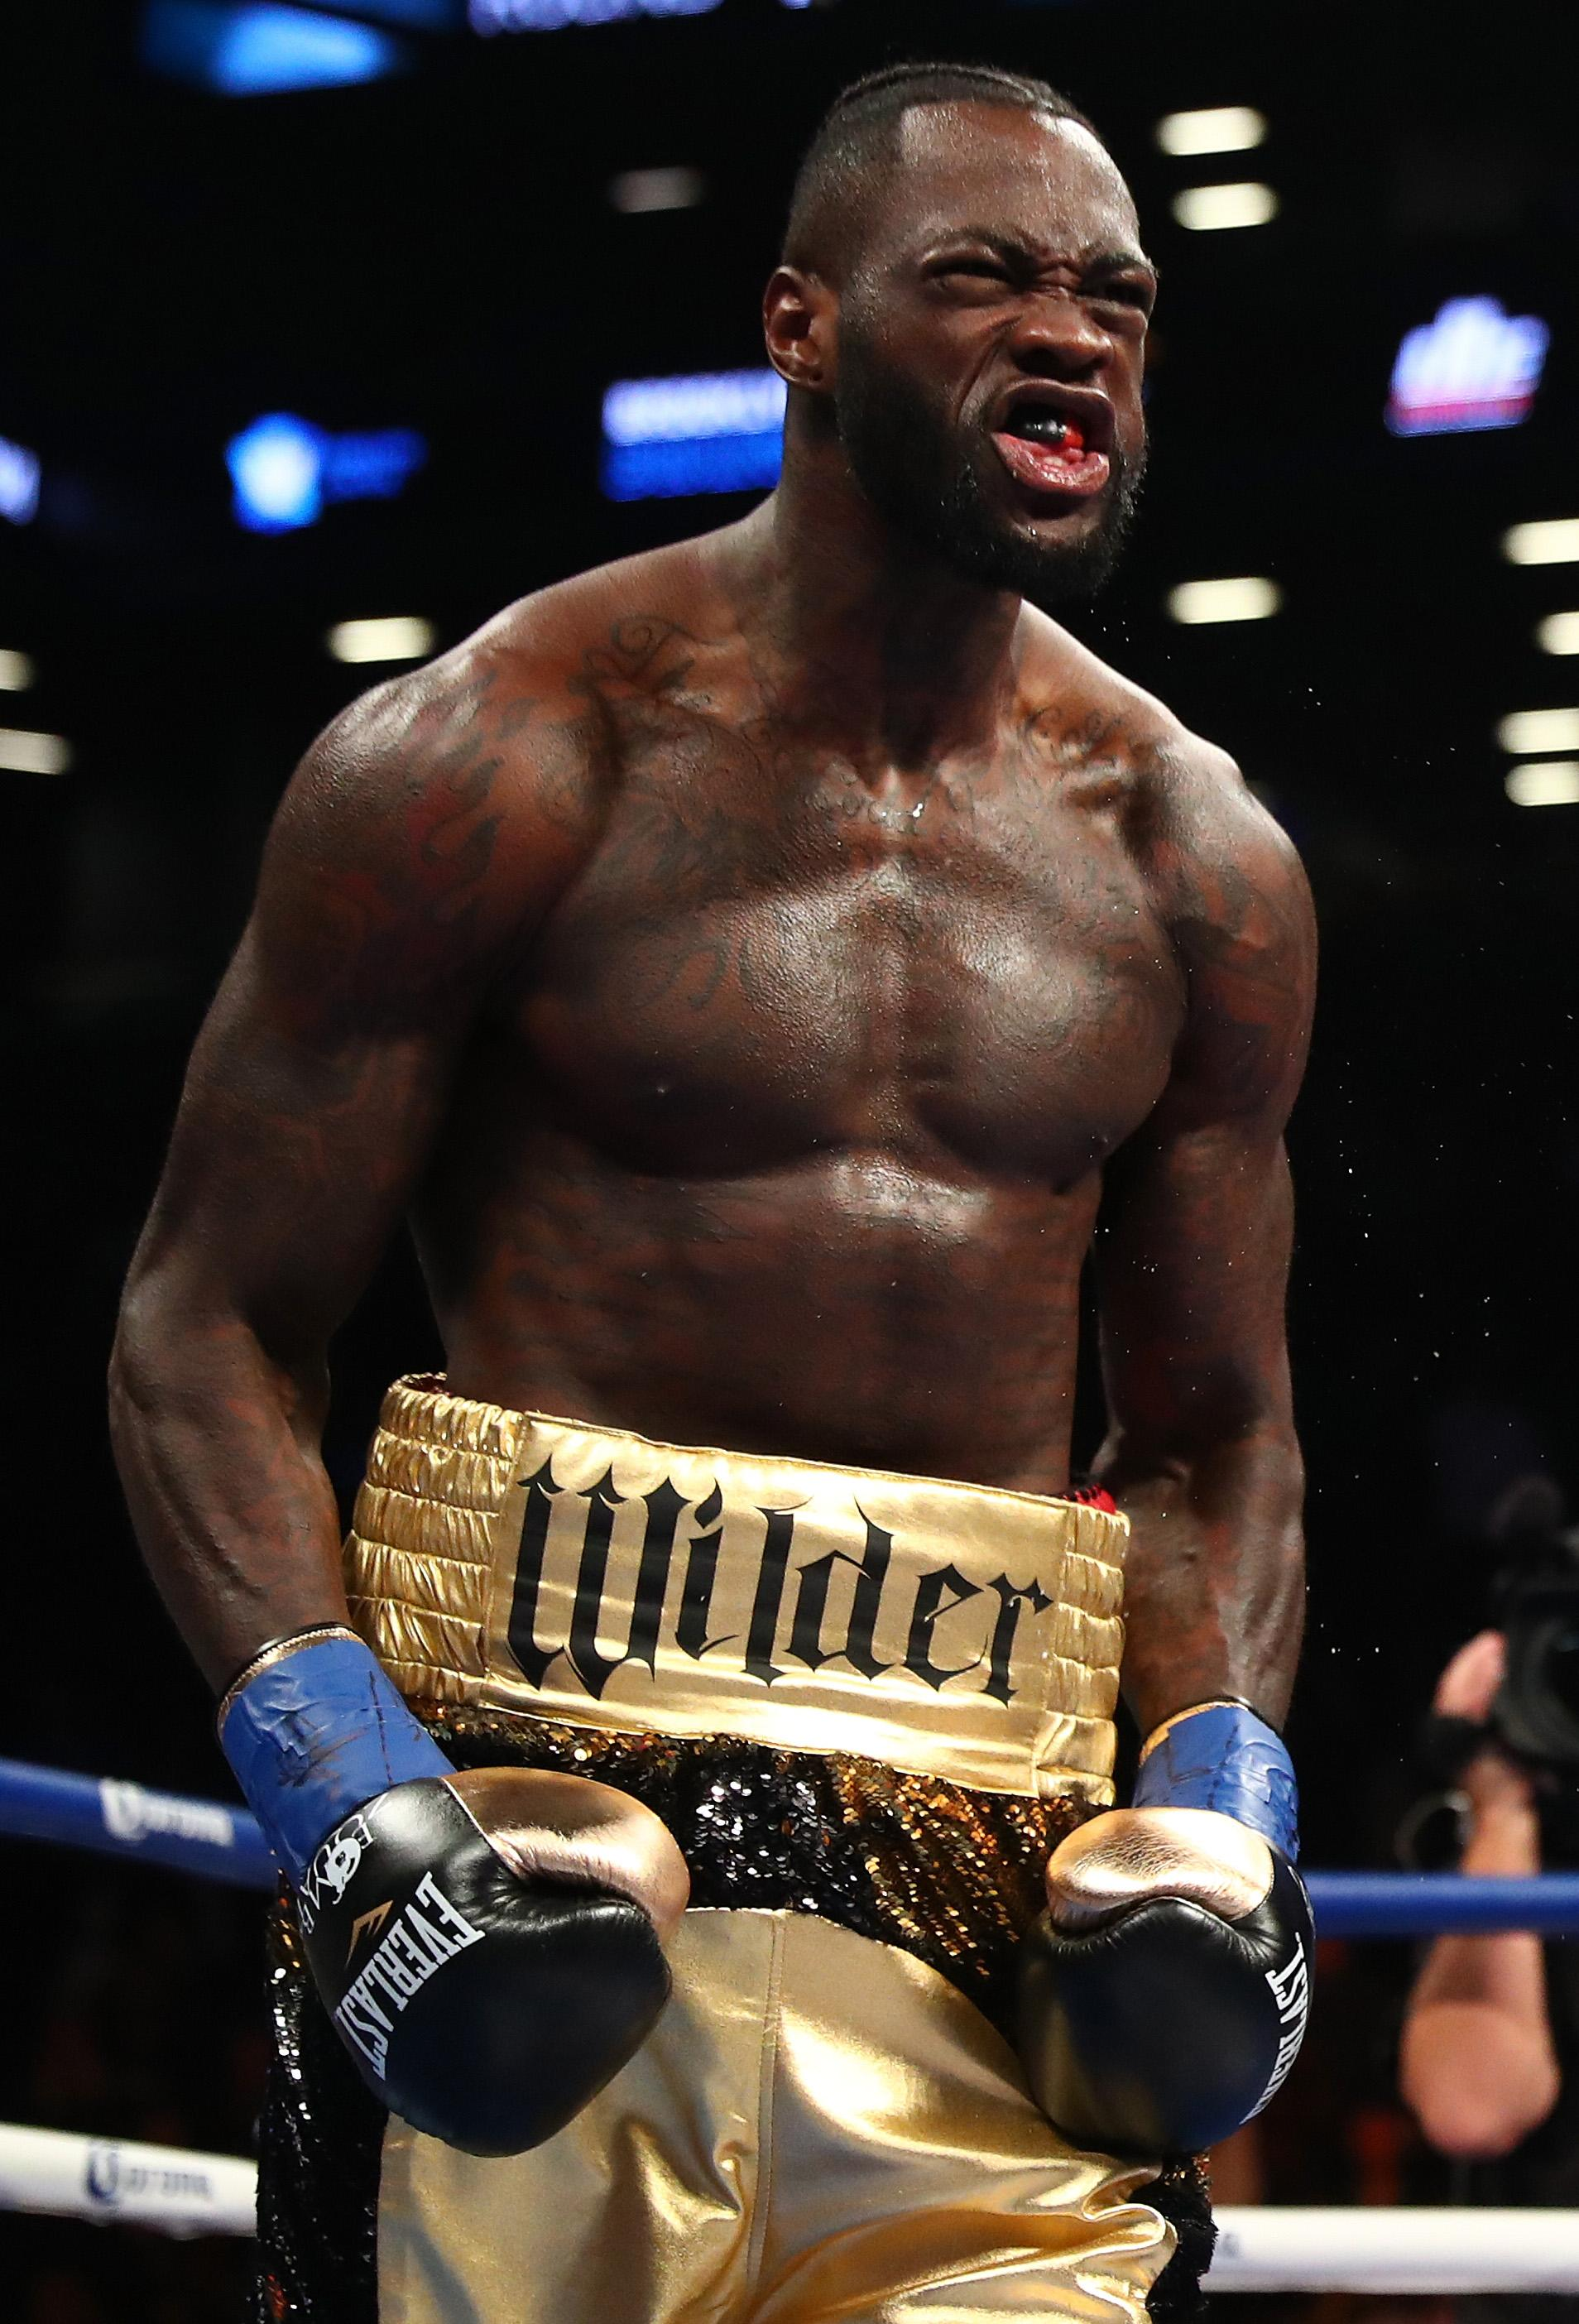 Wilder told mandatory challenger Dominic Breazeale to bring his son into the ring